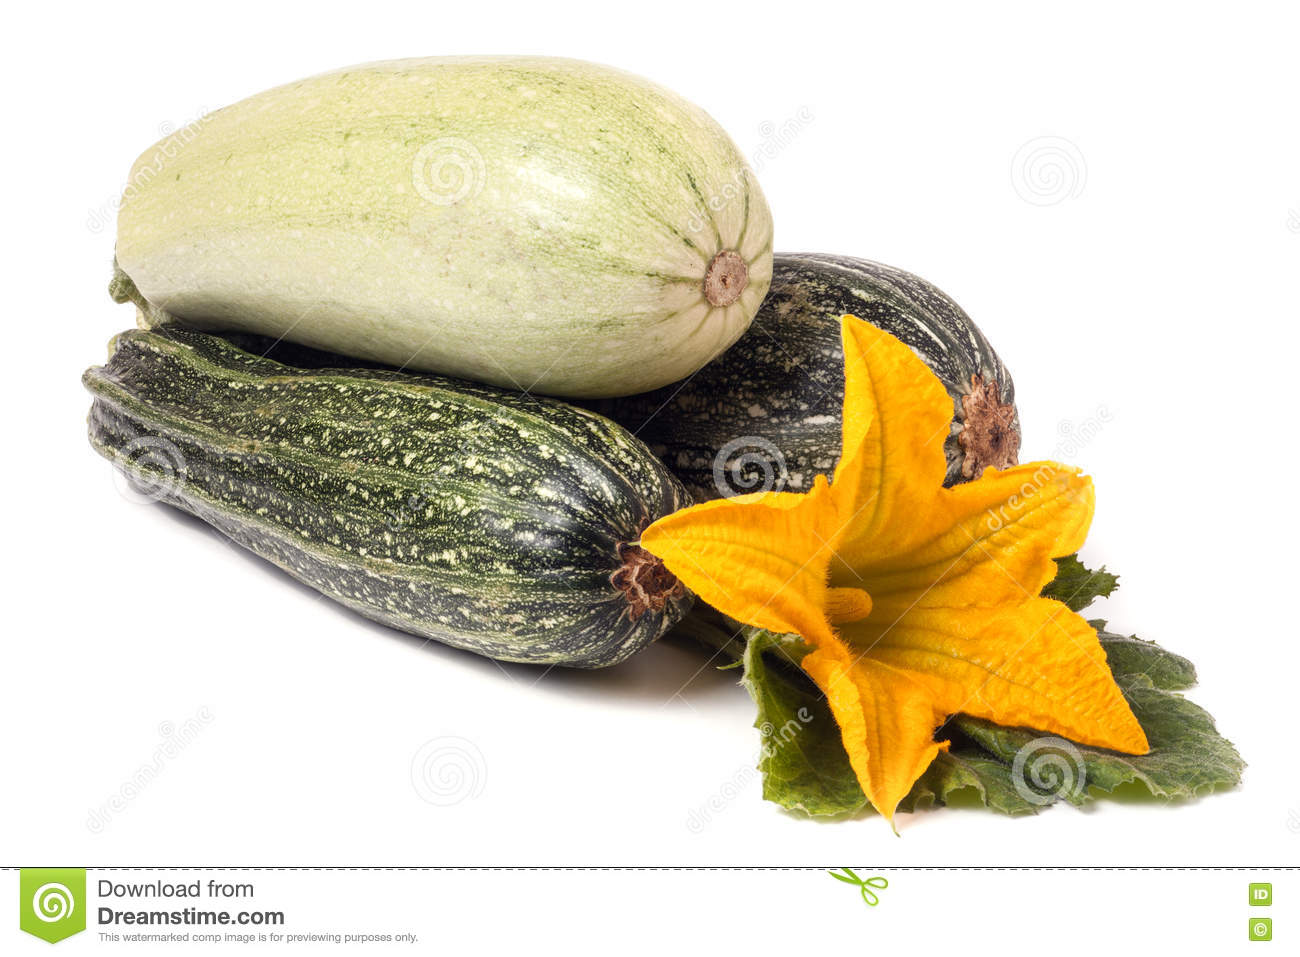 Zucchini and squash with flower leaf isolated on white background zucchini and squash with flower leaf isolated on white background mightylinksfo